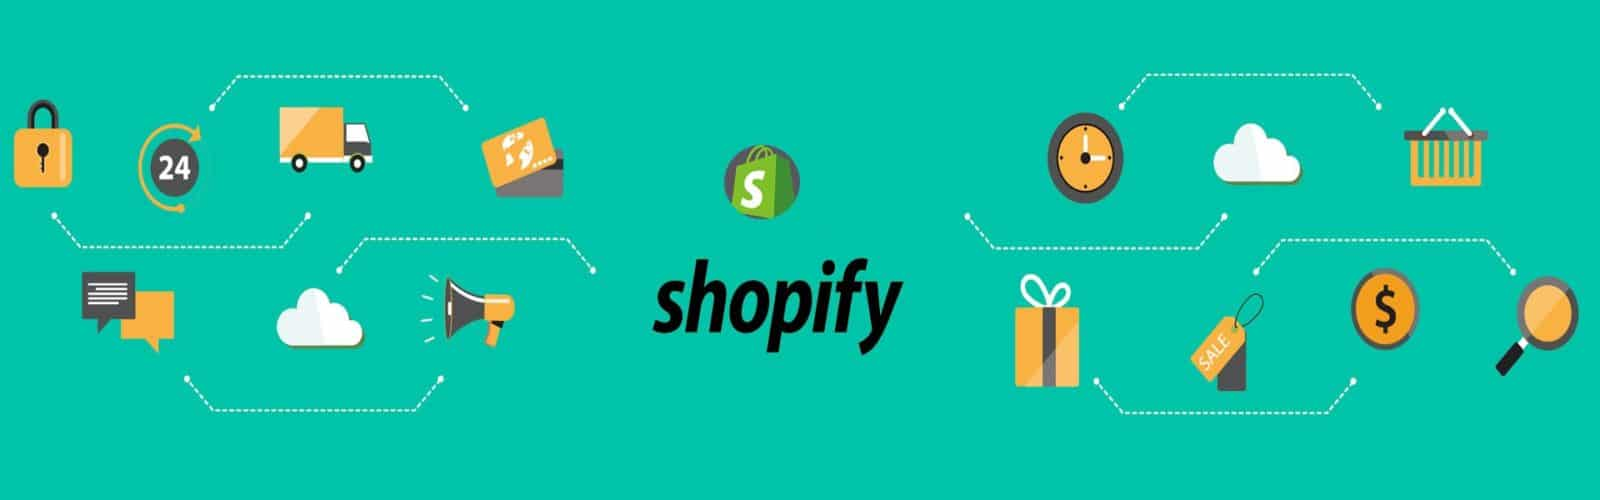 shopify services   banners One box hub